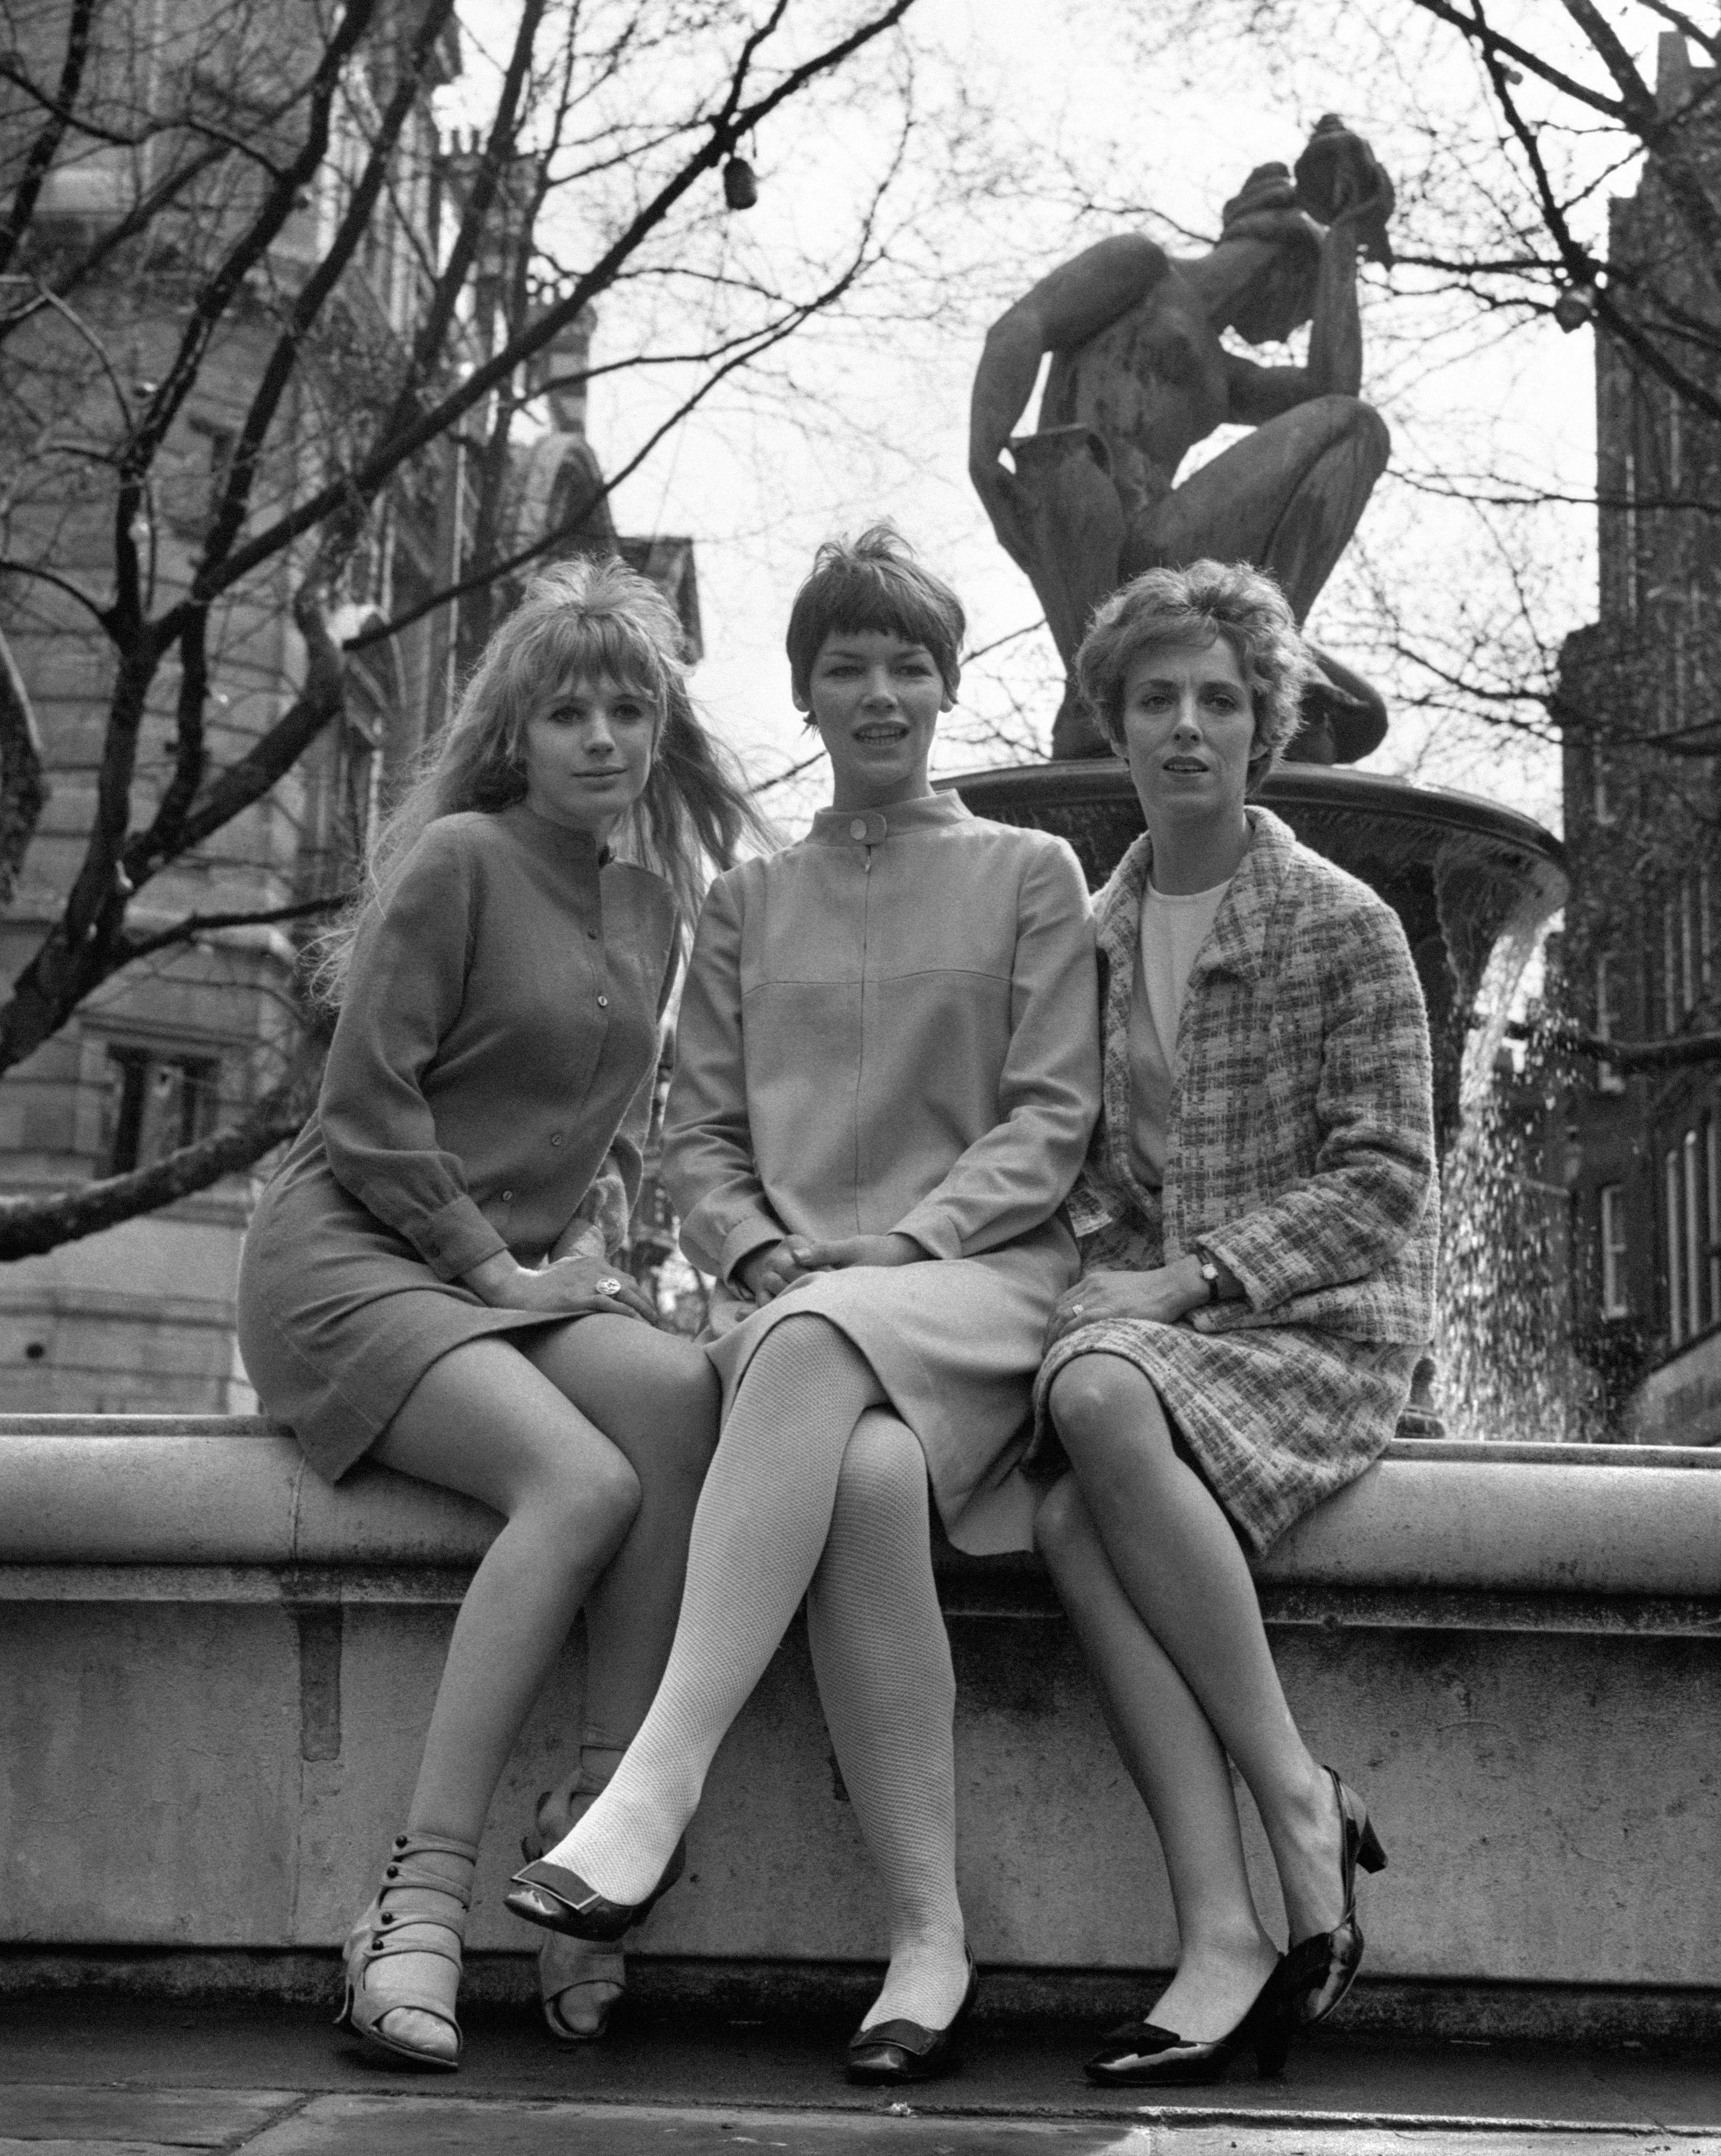 A new look for Anton Chekov's play, 'The Three Sisters', which is being revived at the Royal Court Theatre. The actresses are Marianne Faithfull, Glenda Jackson (centre) and Avril Elgar (right). 07/04/1967